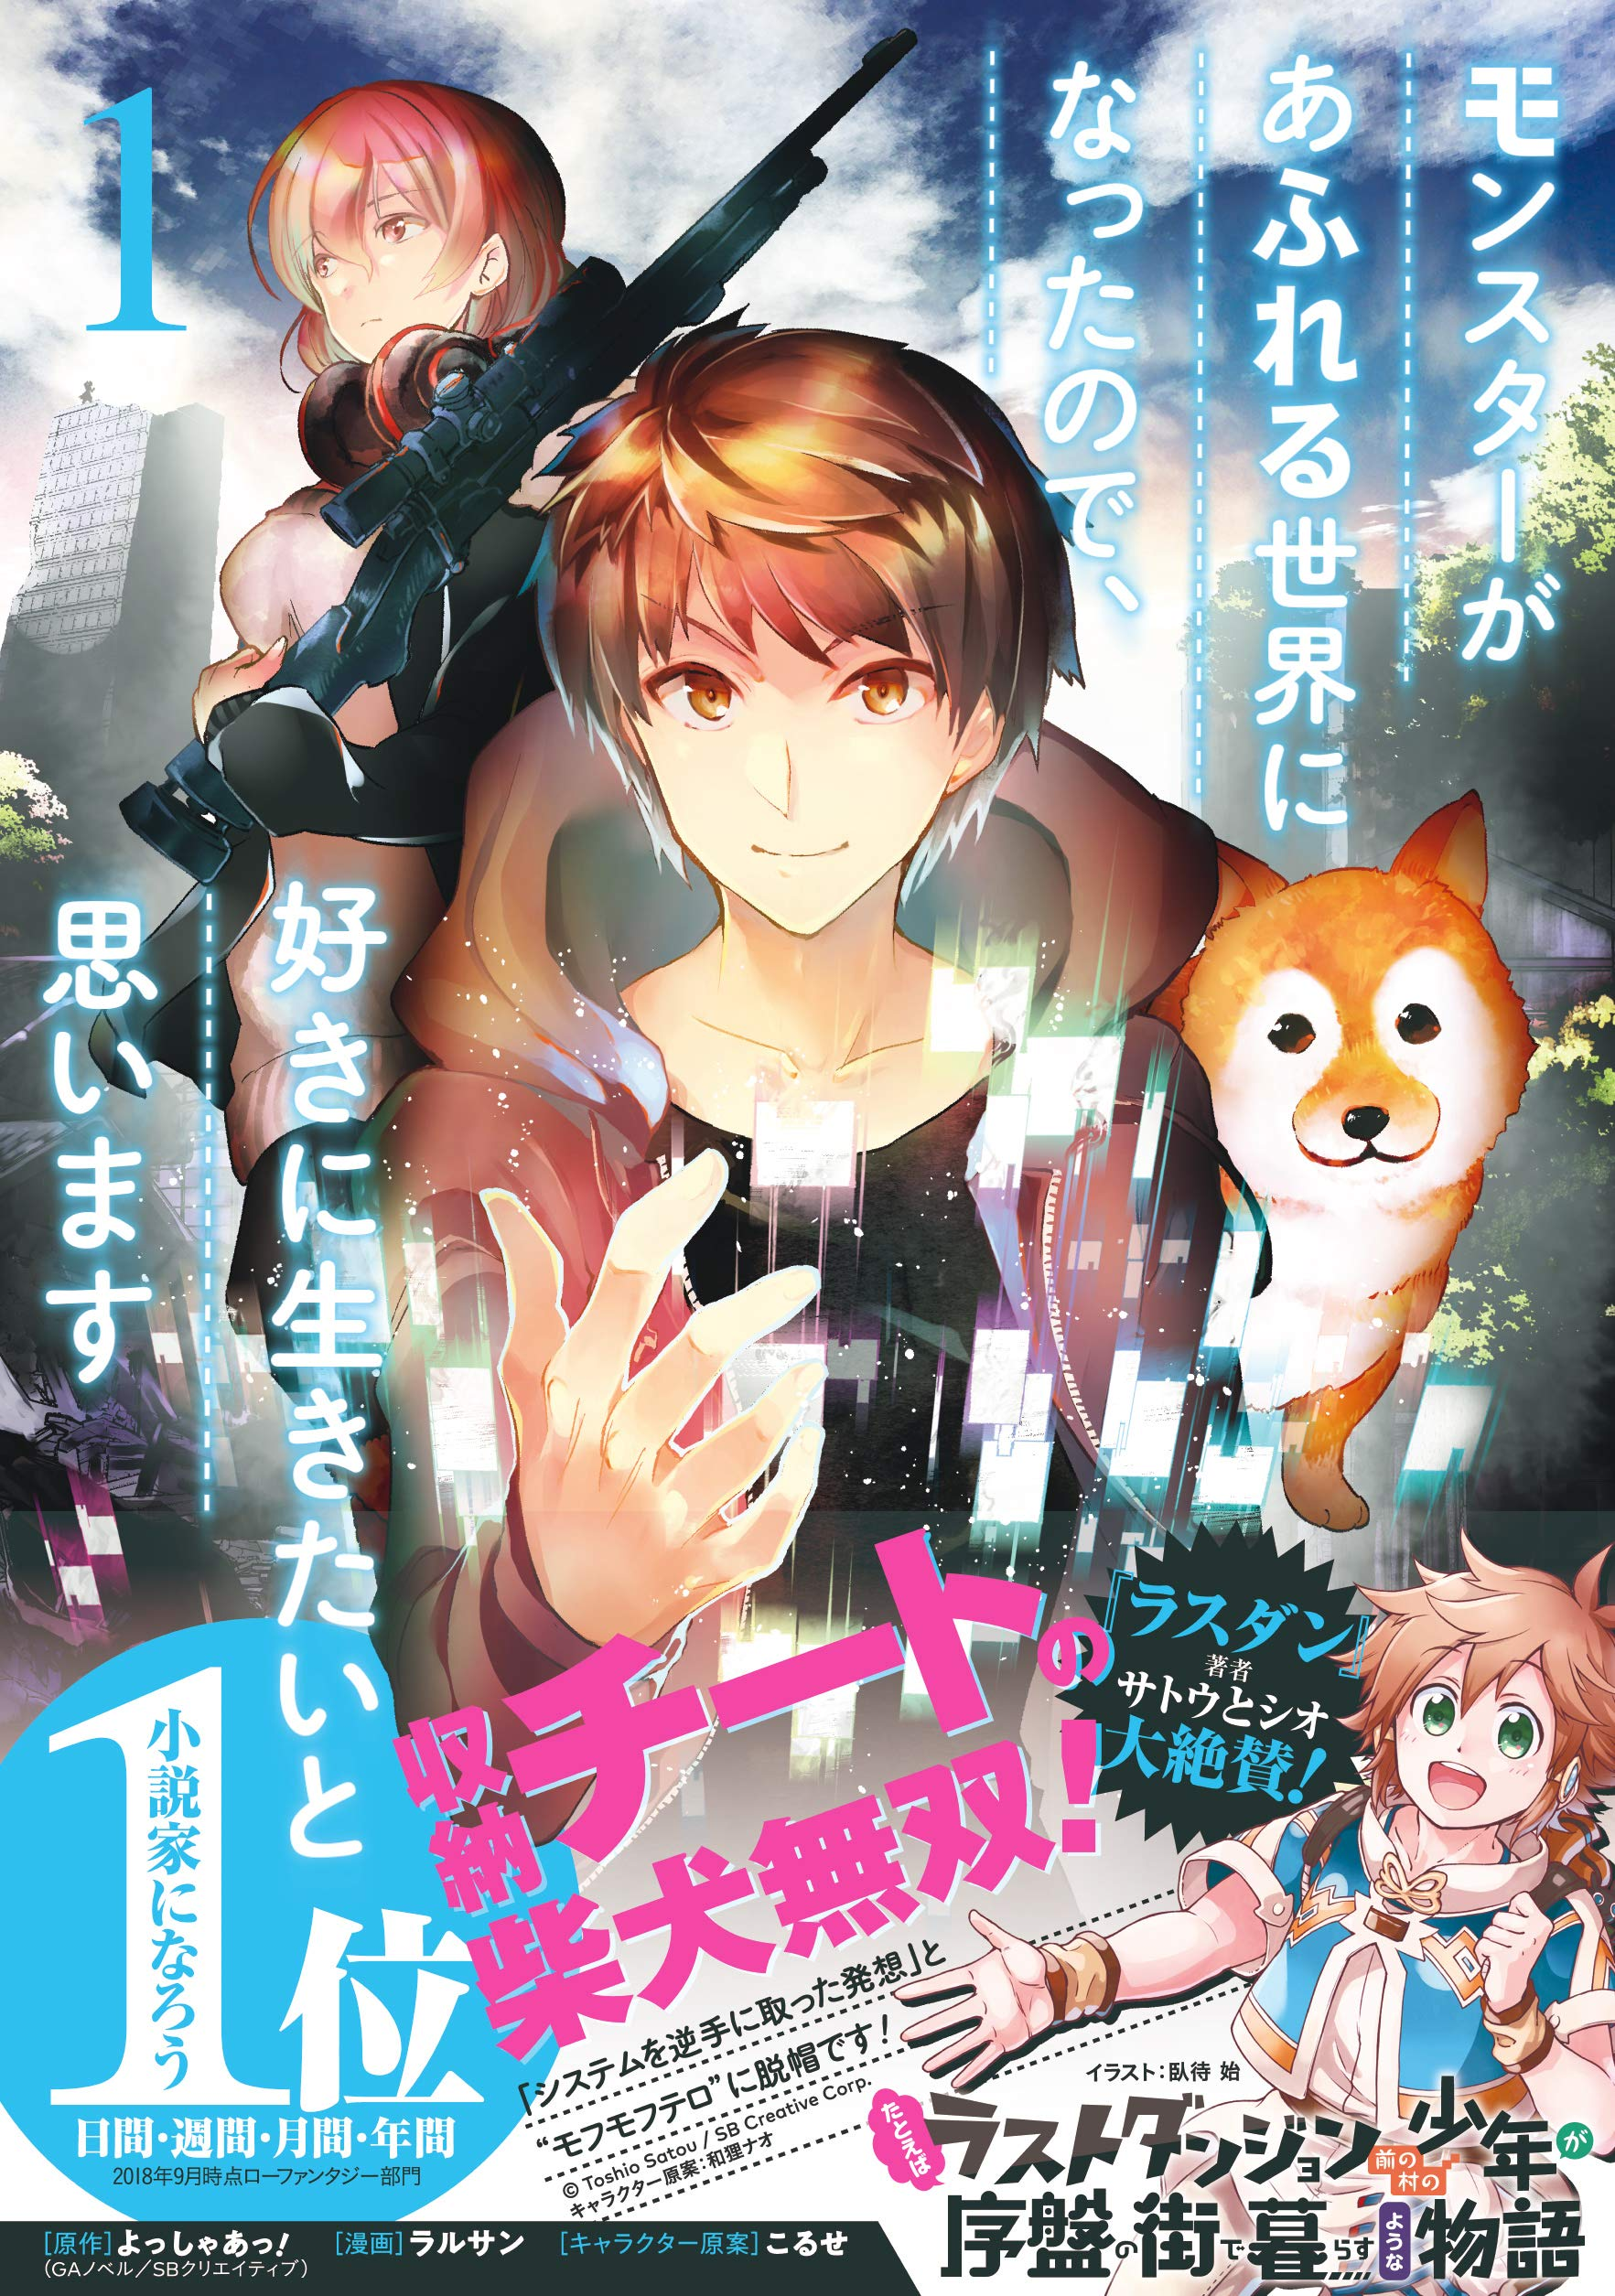 Read Manga The World Is Full Of Monsters Now, Therefor I Want To Live As I Wish